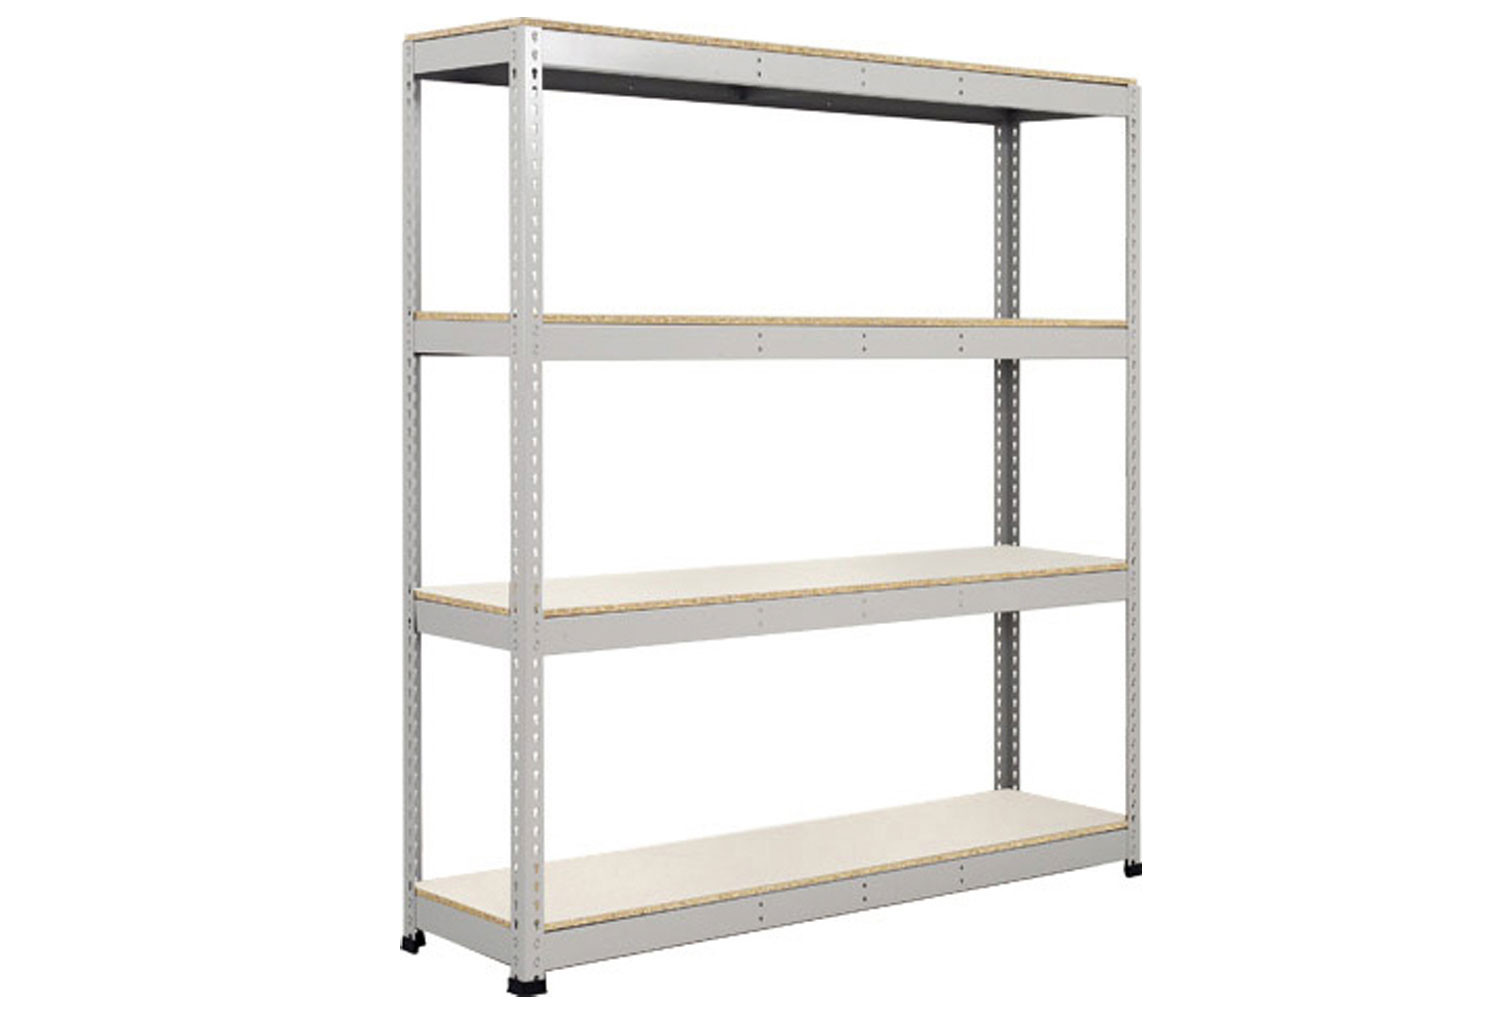 Rapid 1 Heavy Duty Shelving With 4 Melamine Shelves 1830wx1980h (Grey)